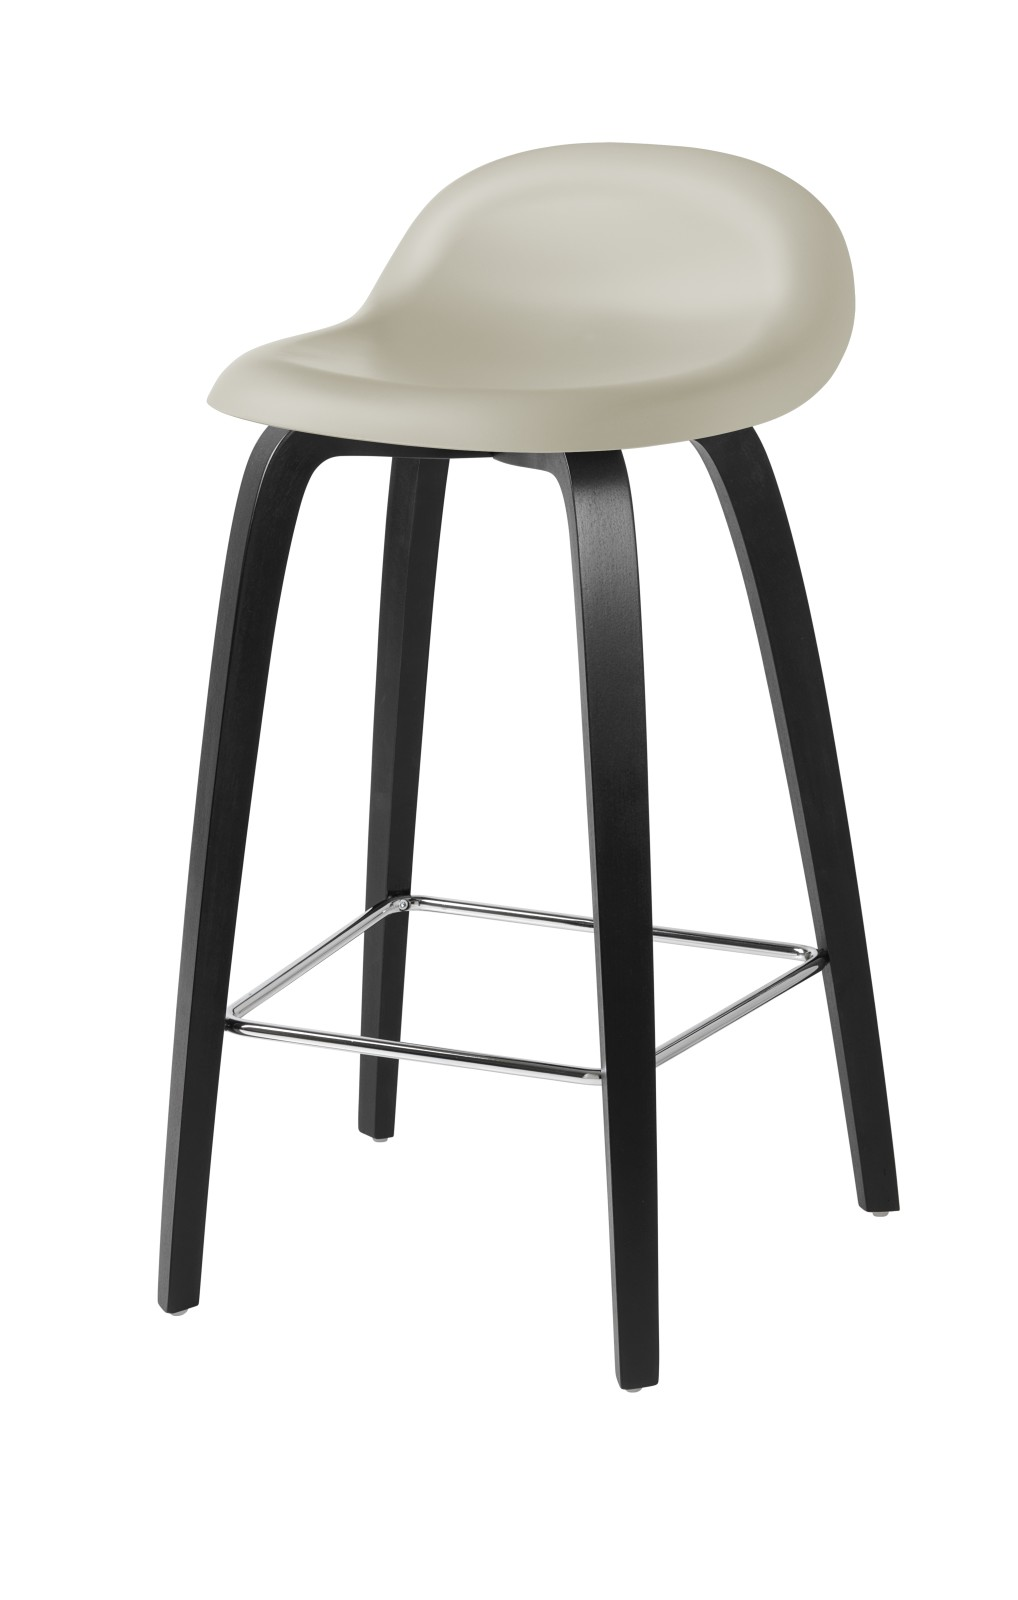 3D Counter Stool - Un-Upholstered, Wood Base Gubi HiRek Moon Grey, Gubi Wood Black Stained Beech, Gu